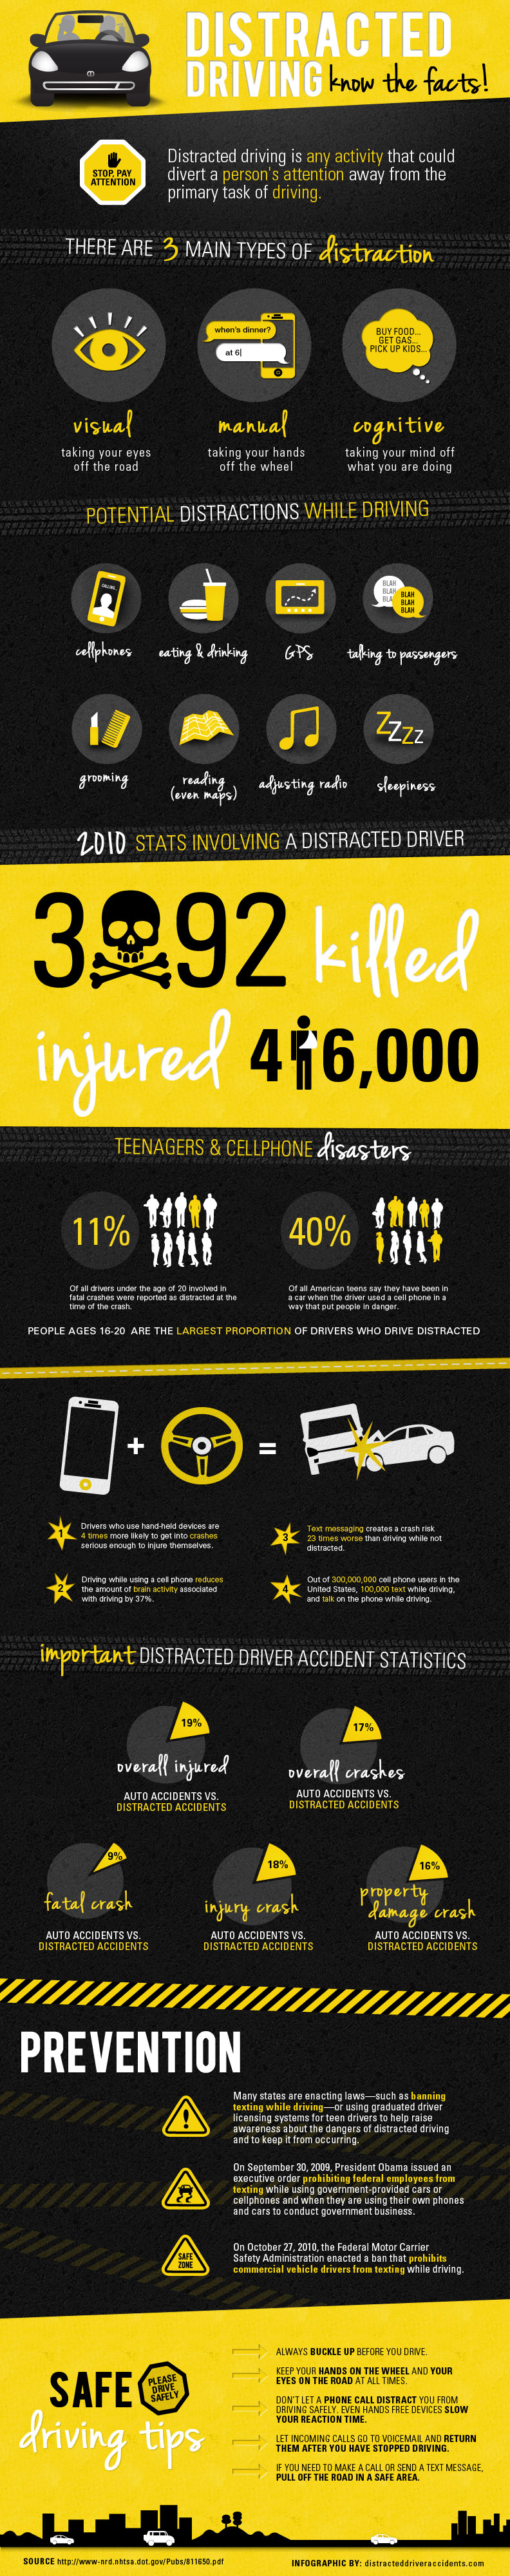 Dangers of Distracted Driving (Infographic)